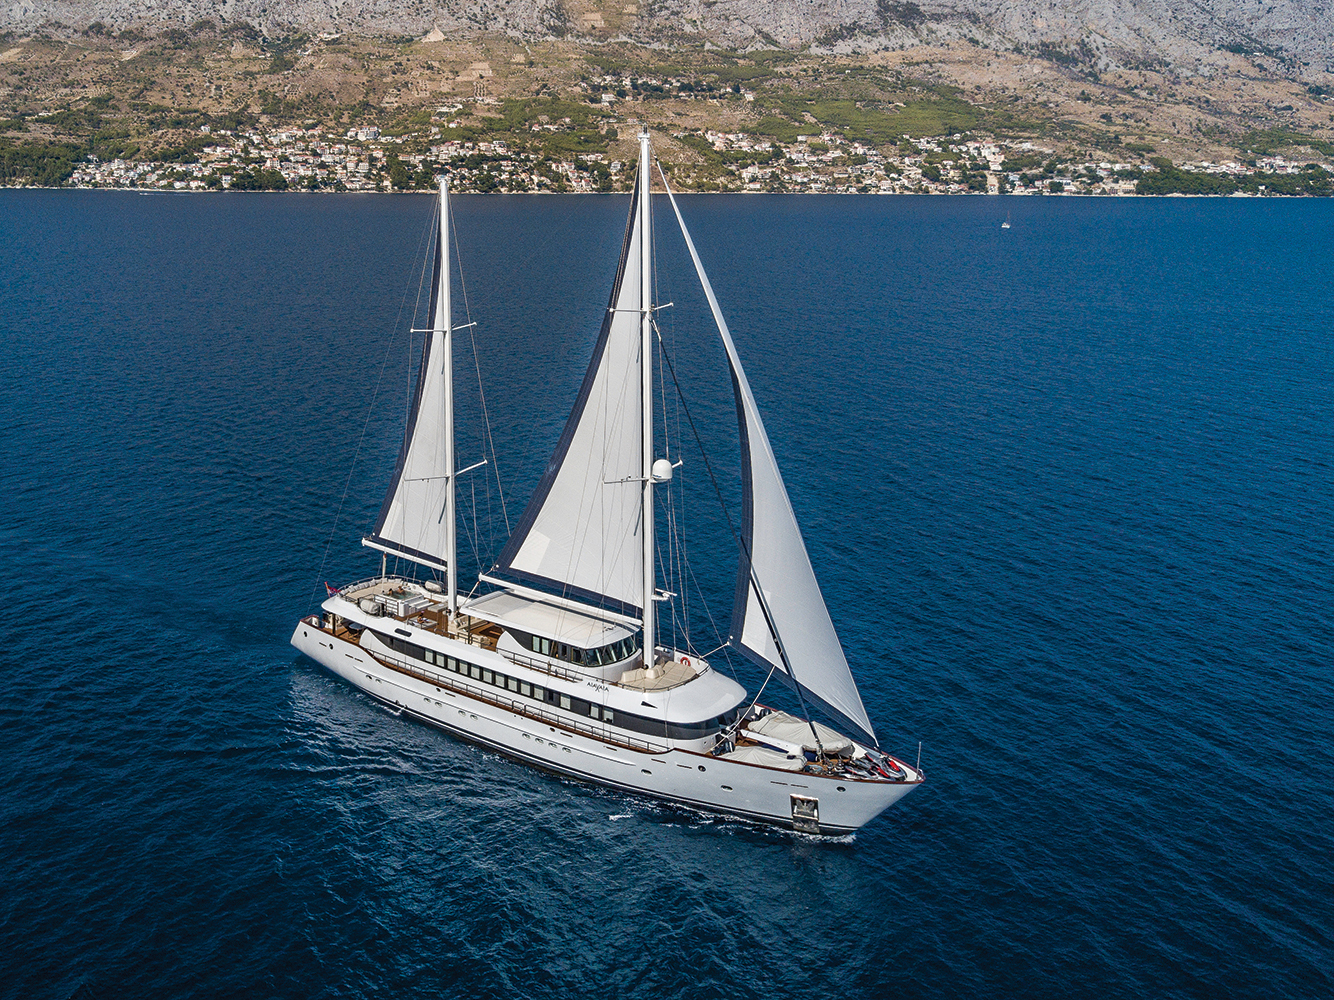 YACHT AIAXAIA  LOA: 46,00m / 151ft  GUEST CABINS: 1 Master, 1 Vip, 2 Double, 2 Convertible twins  MAX. NUMBER OF GUESTS: 12